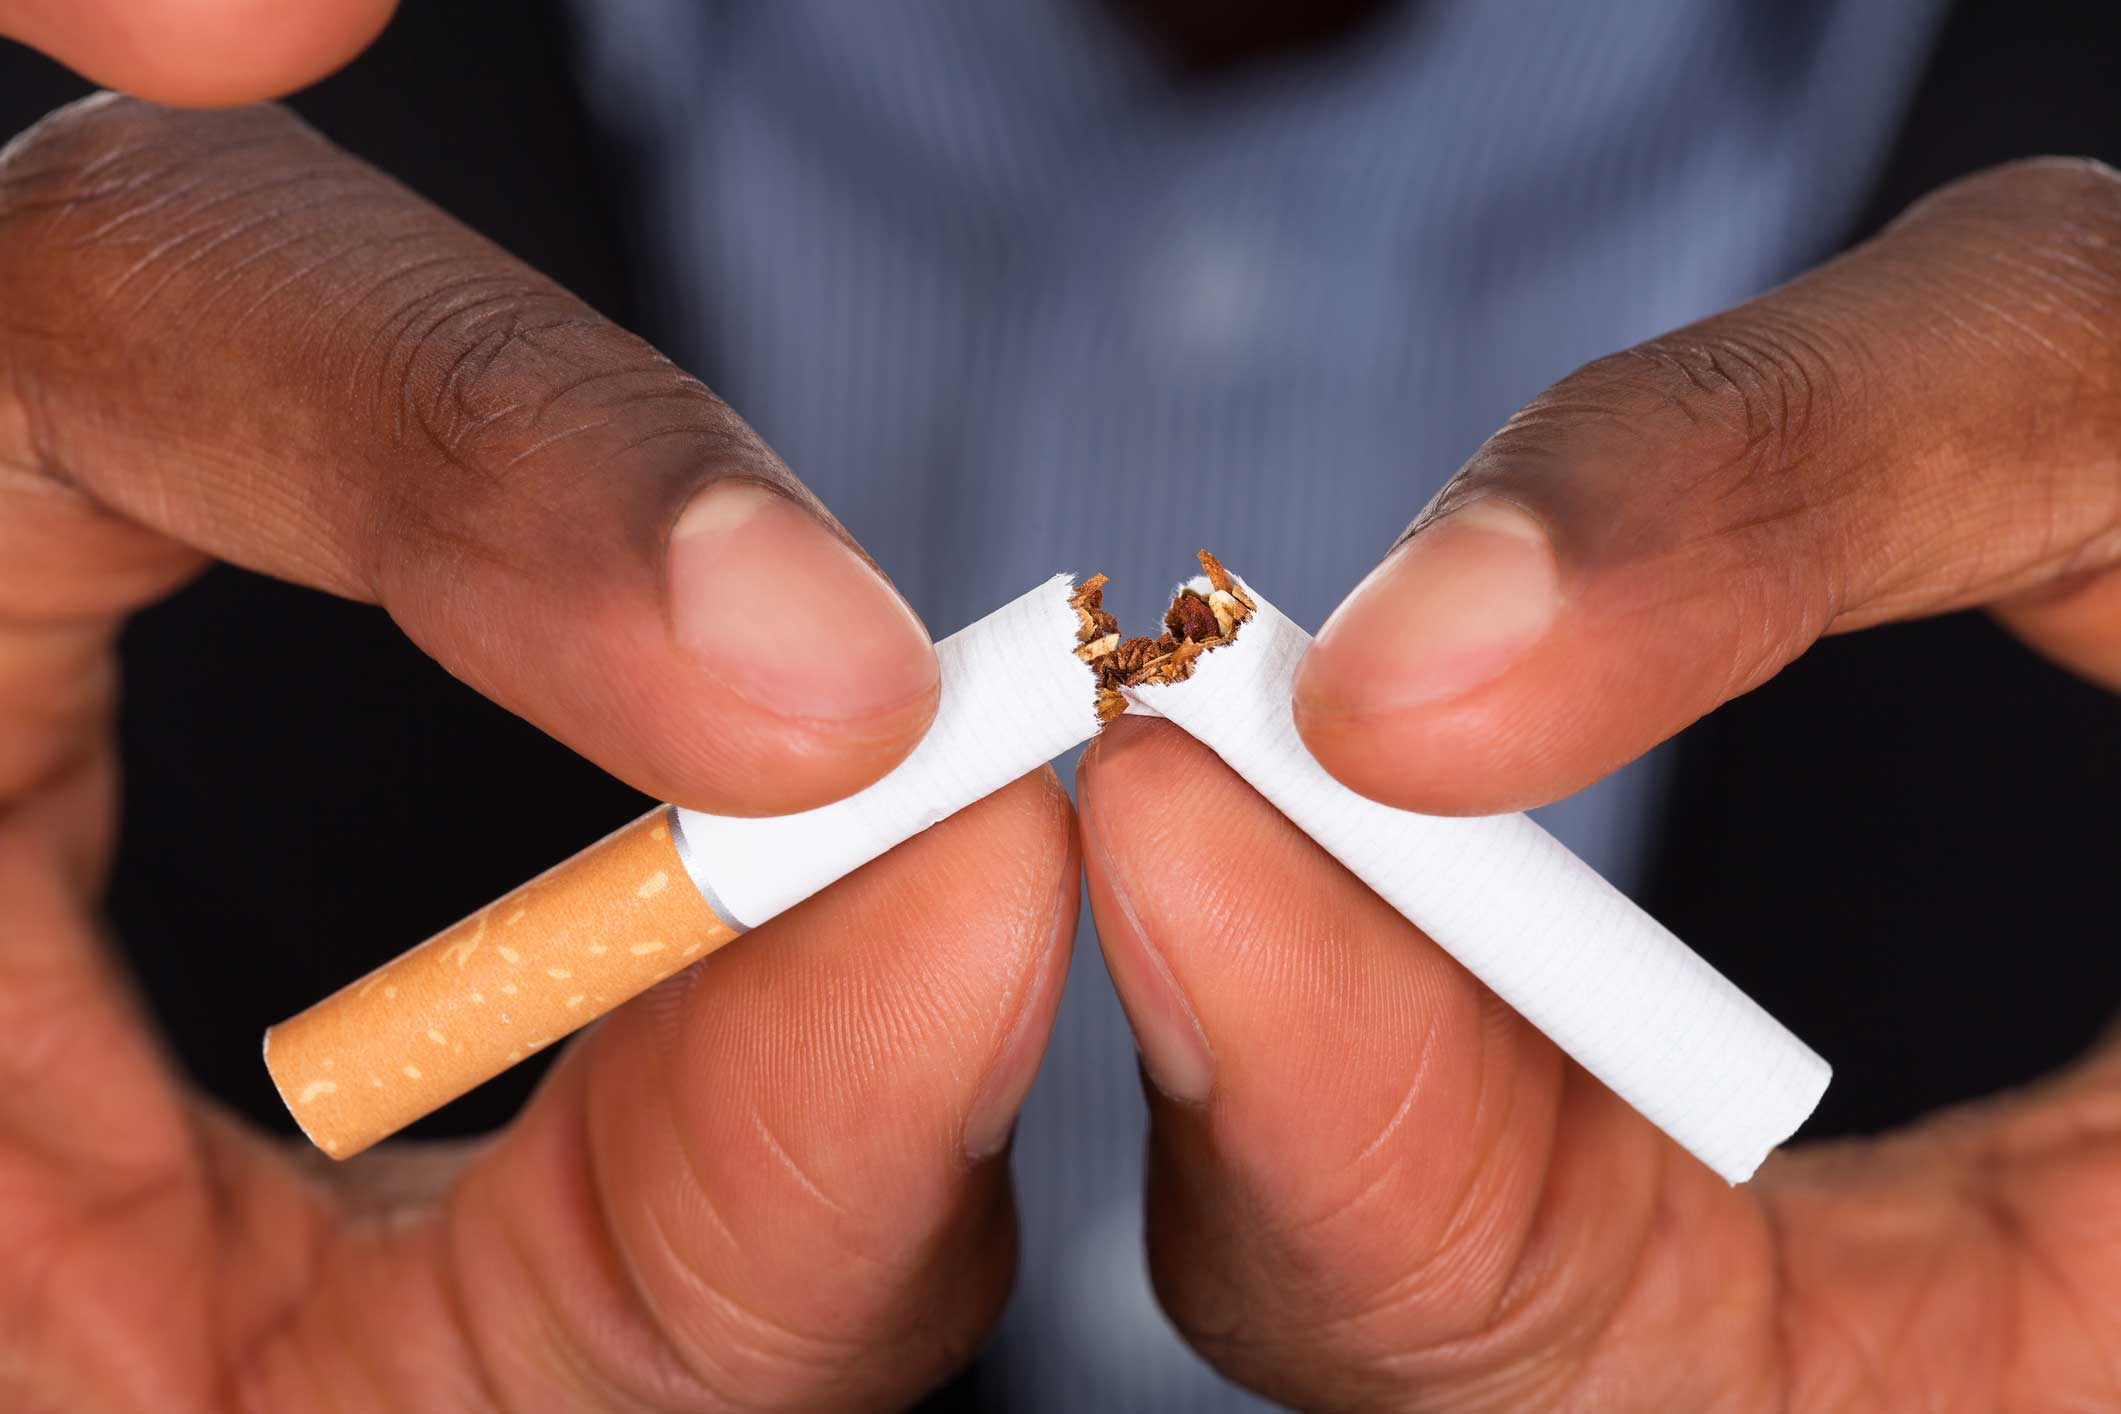 Tobacco & Oral Cancer: Tips to Quit